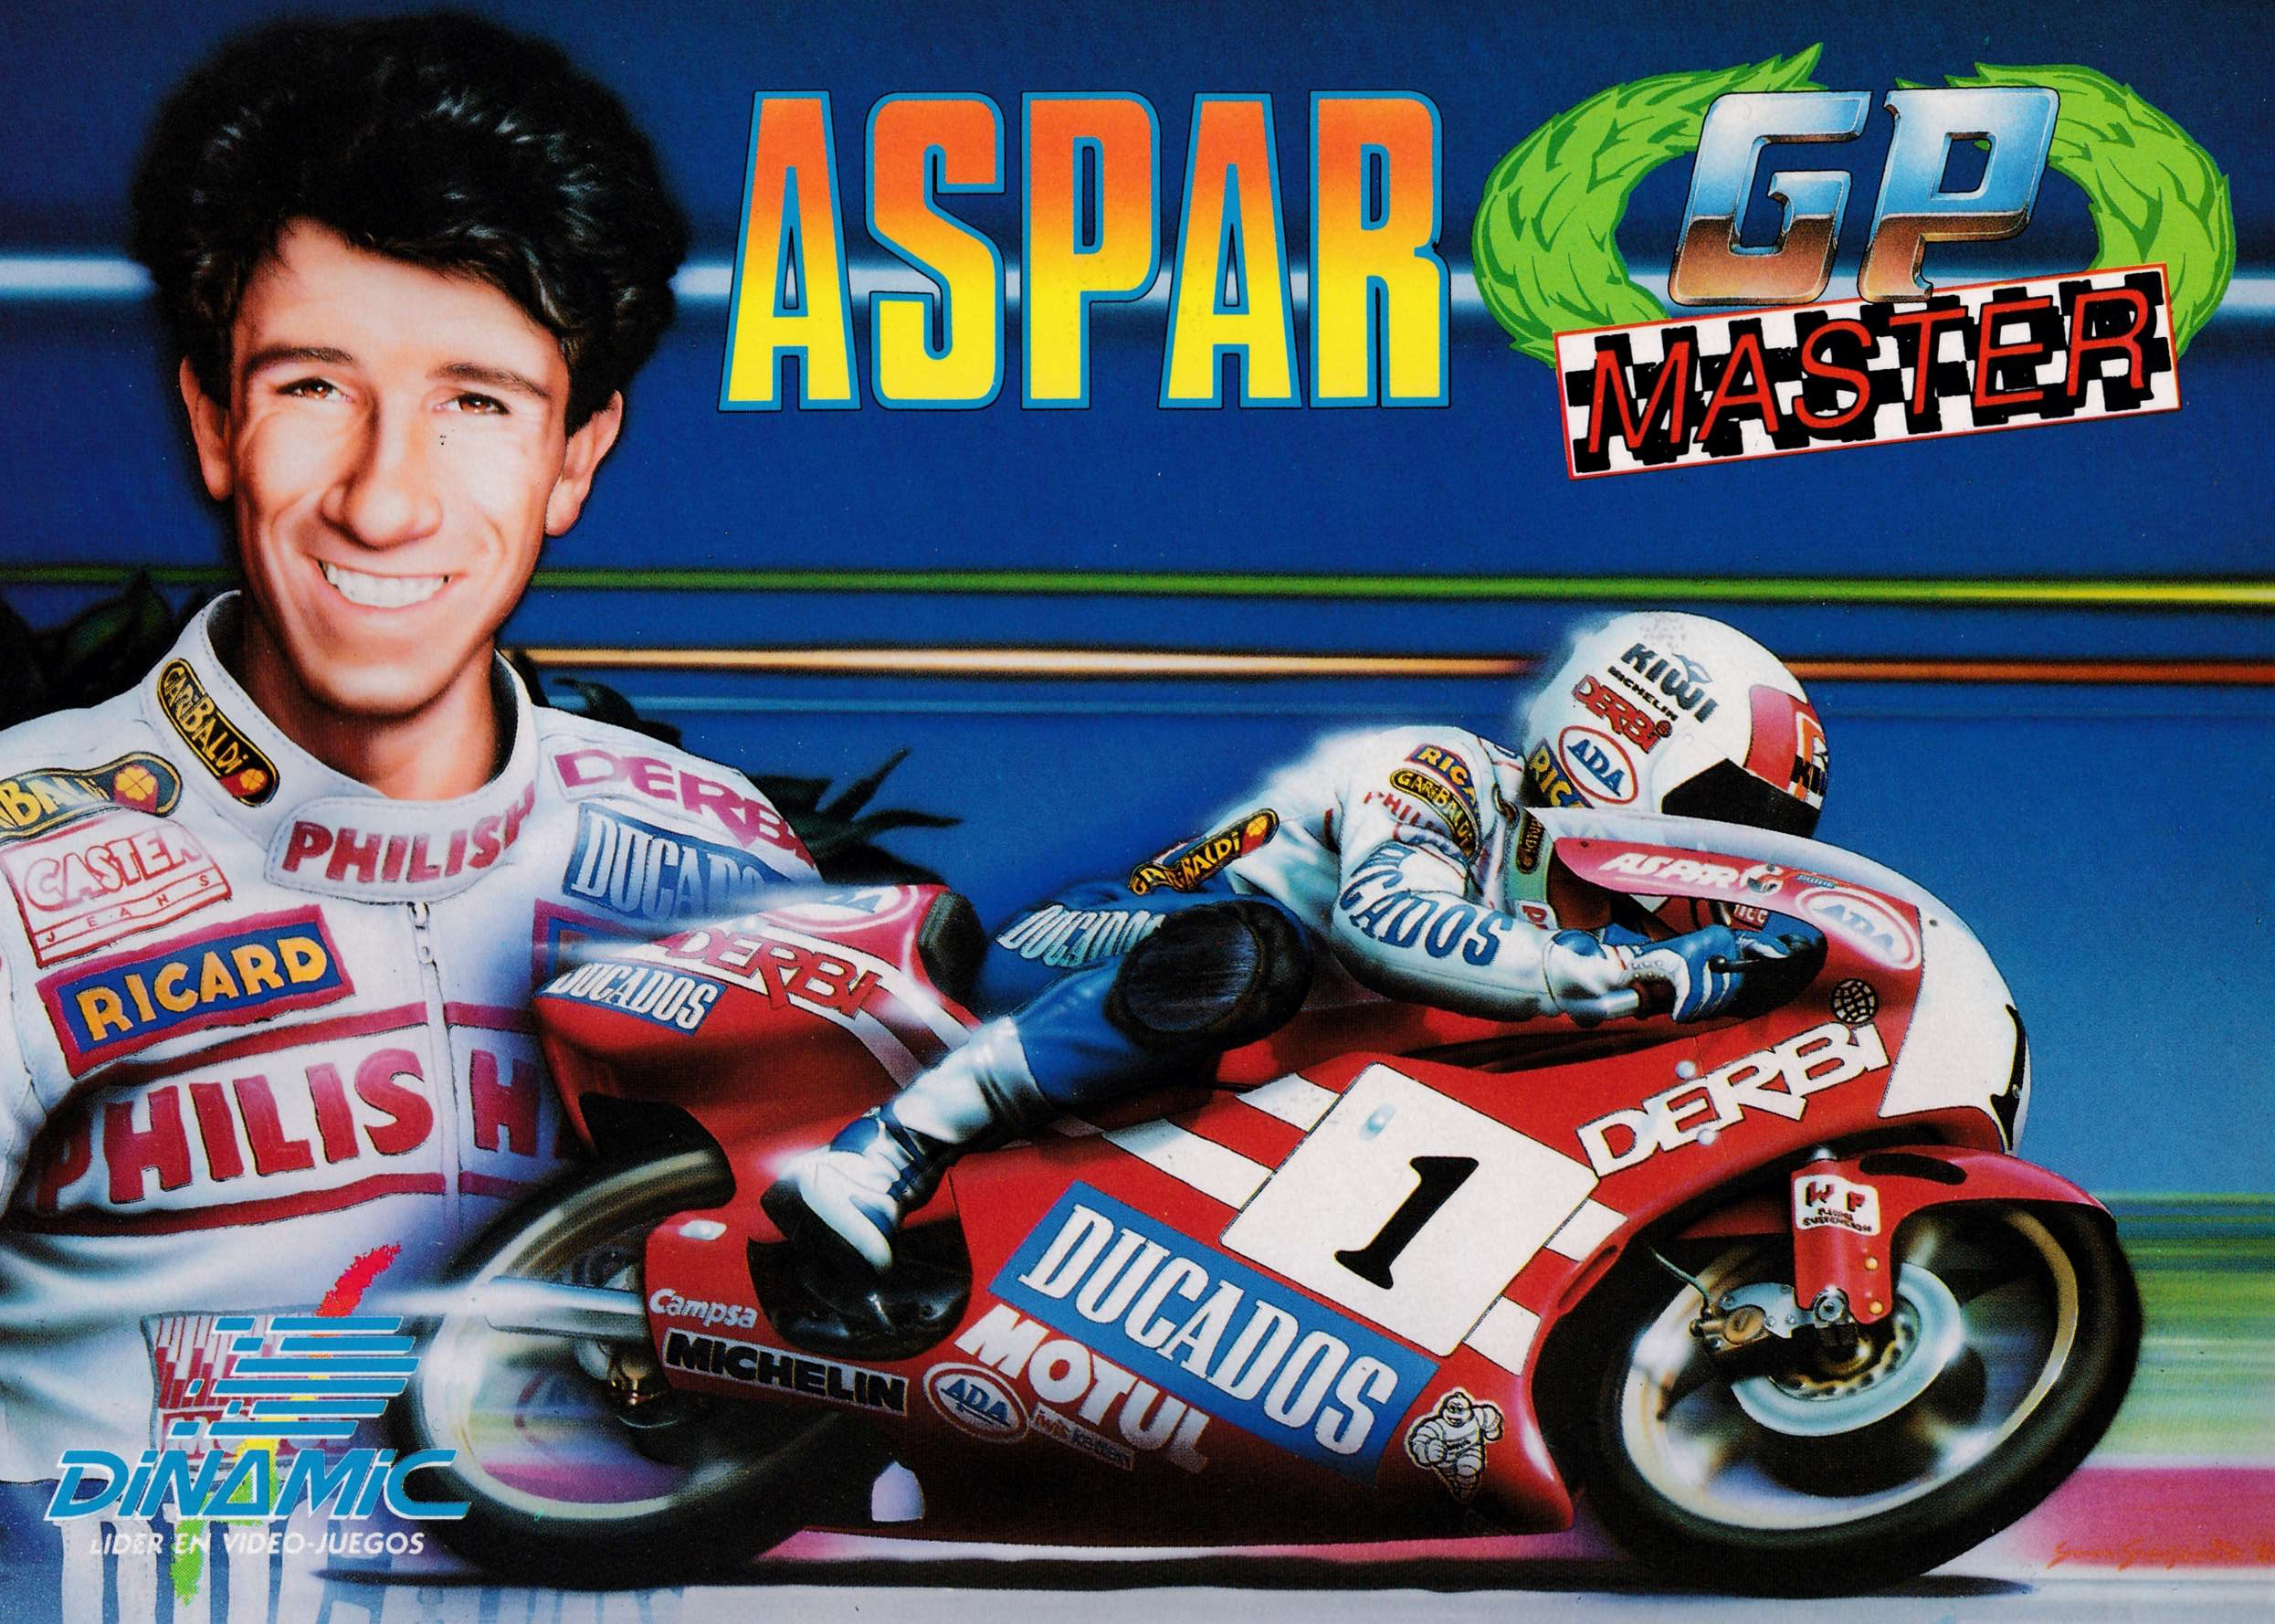 cover of the Amstrad CPC game Aspar GP Master  by GameBase CPC